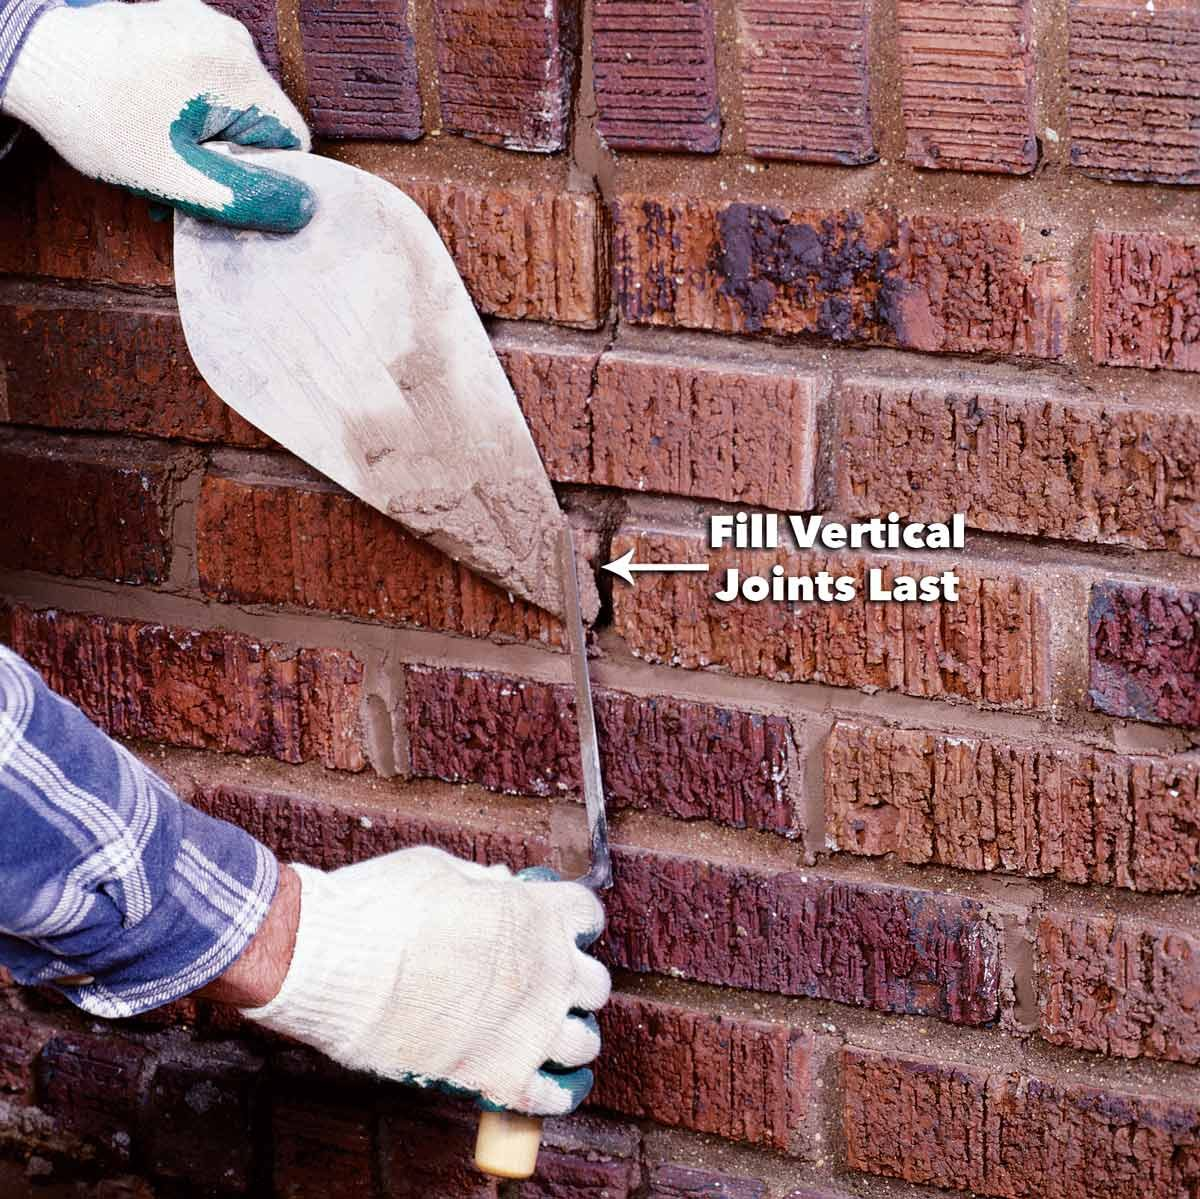 fill vertical mortar joints last